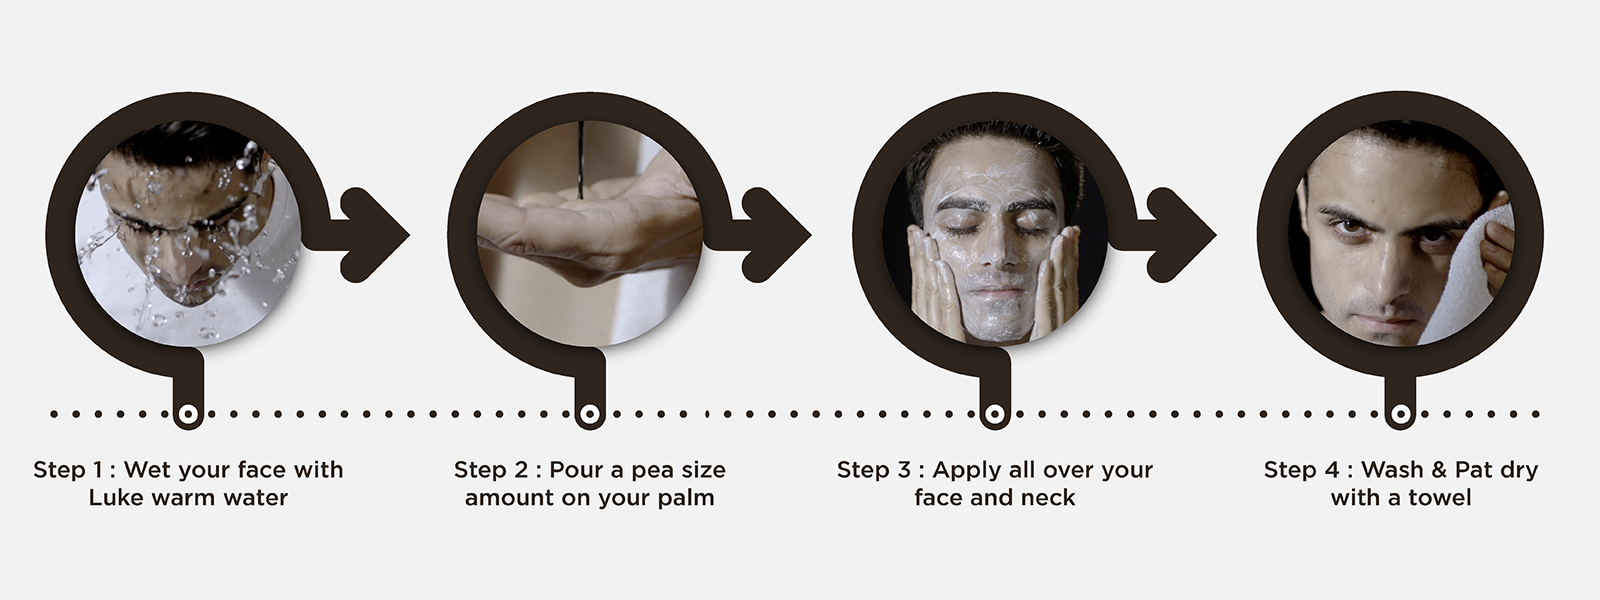 How to use charcoal face wash